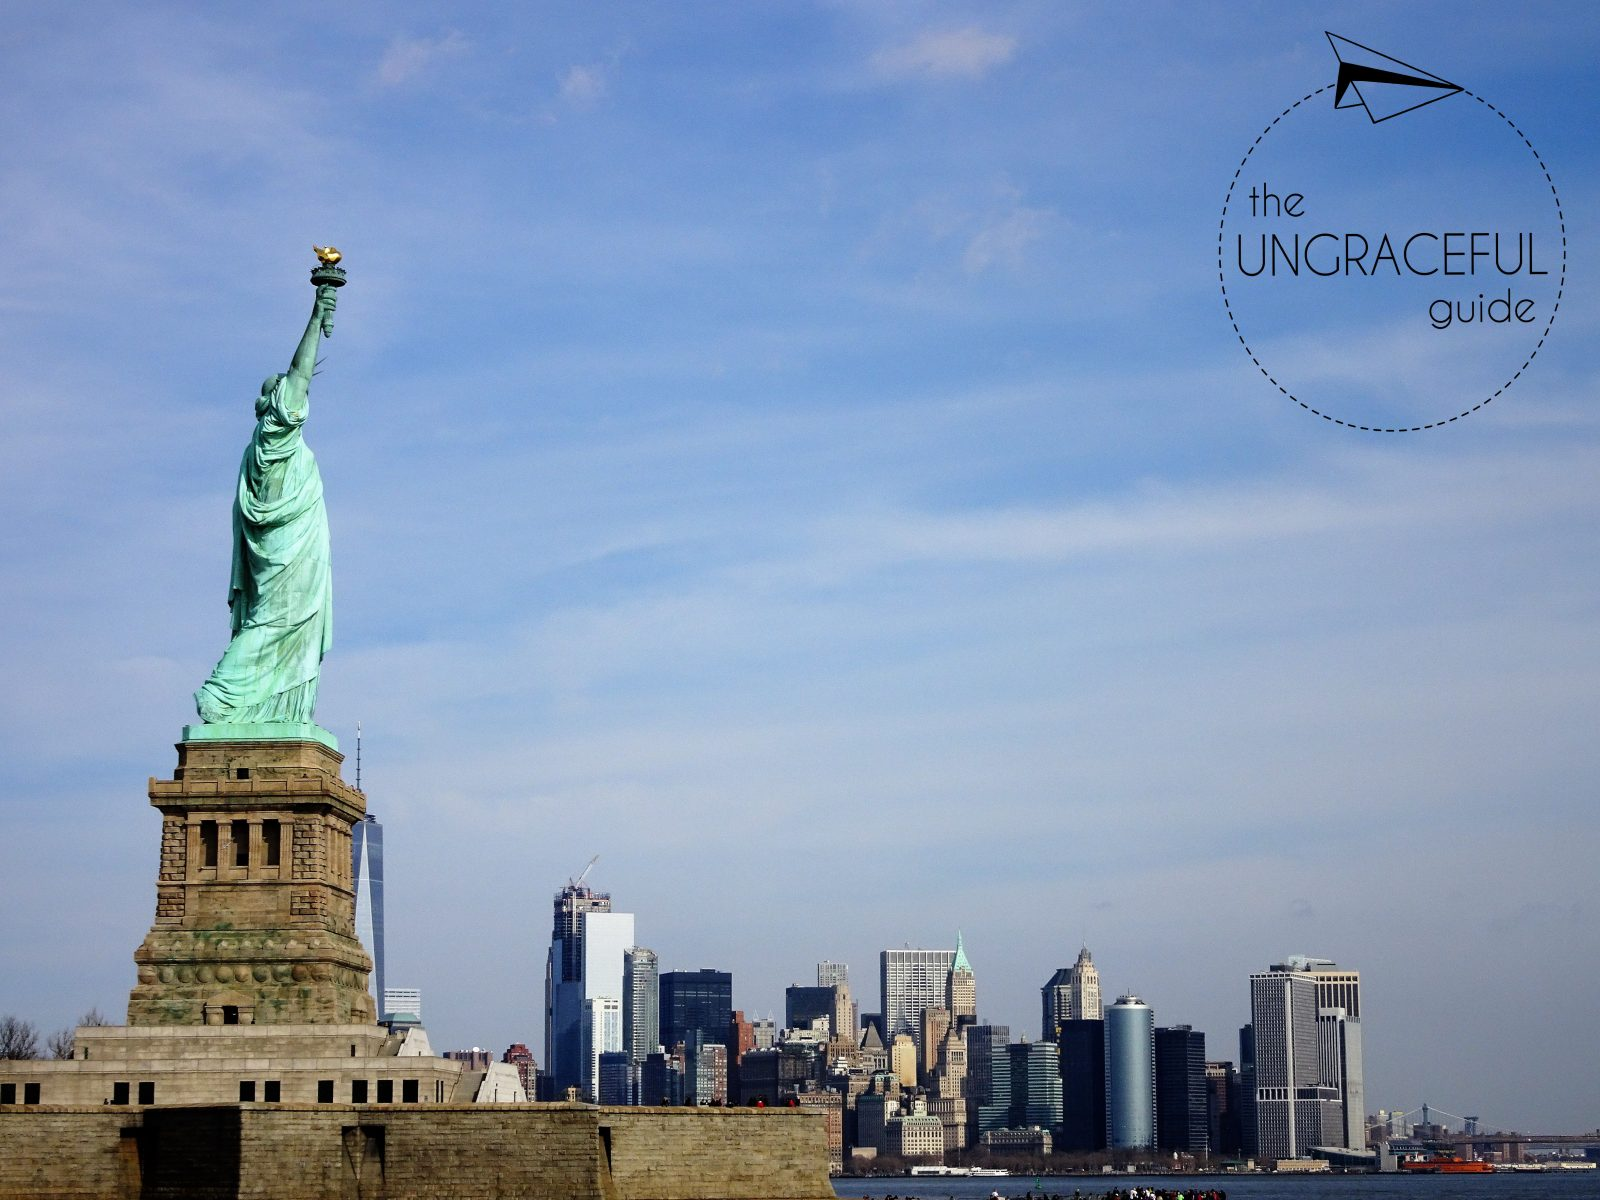 New York, New York: The Concrete Jungle - The Ungraceful Guide